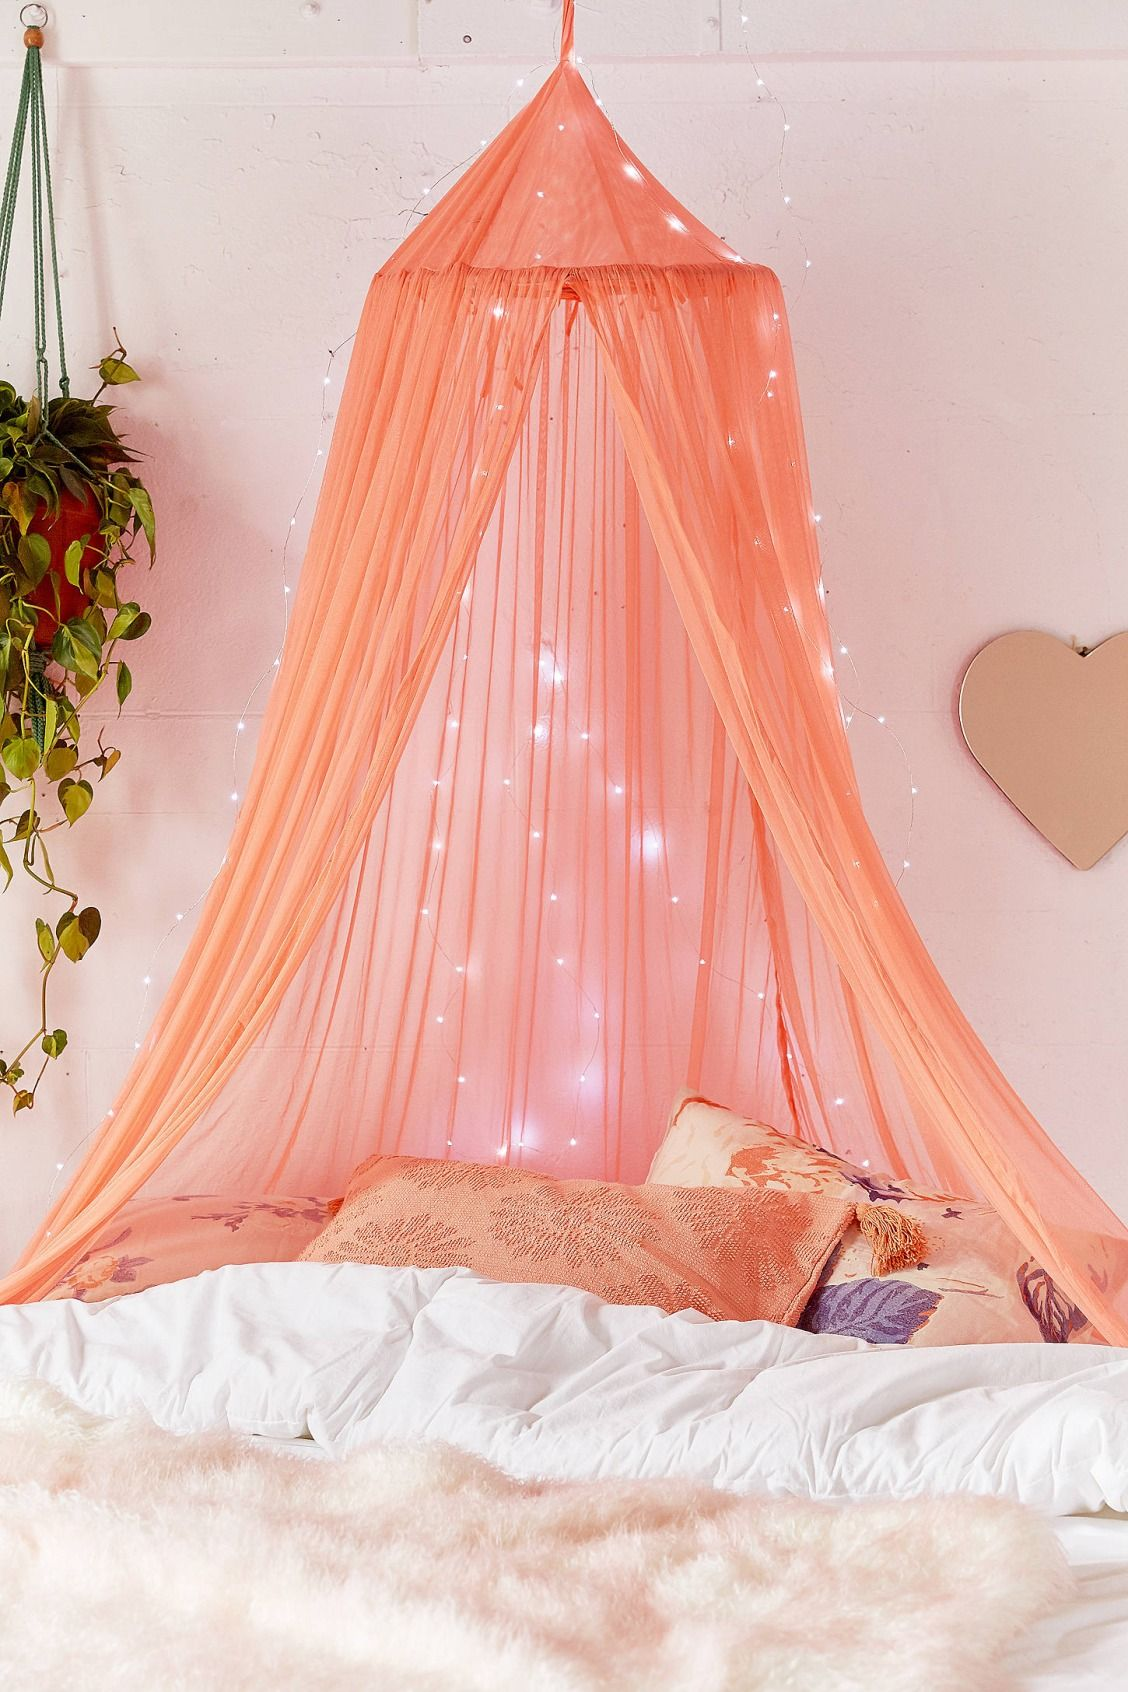 Mesh Bed Canopy & Mesh Bed Canopy | Canopy Urban outfitters and Urban